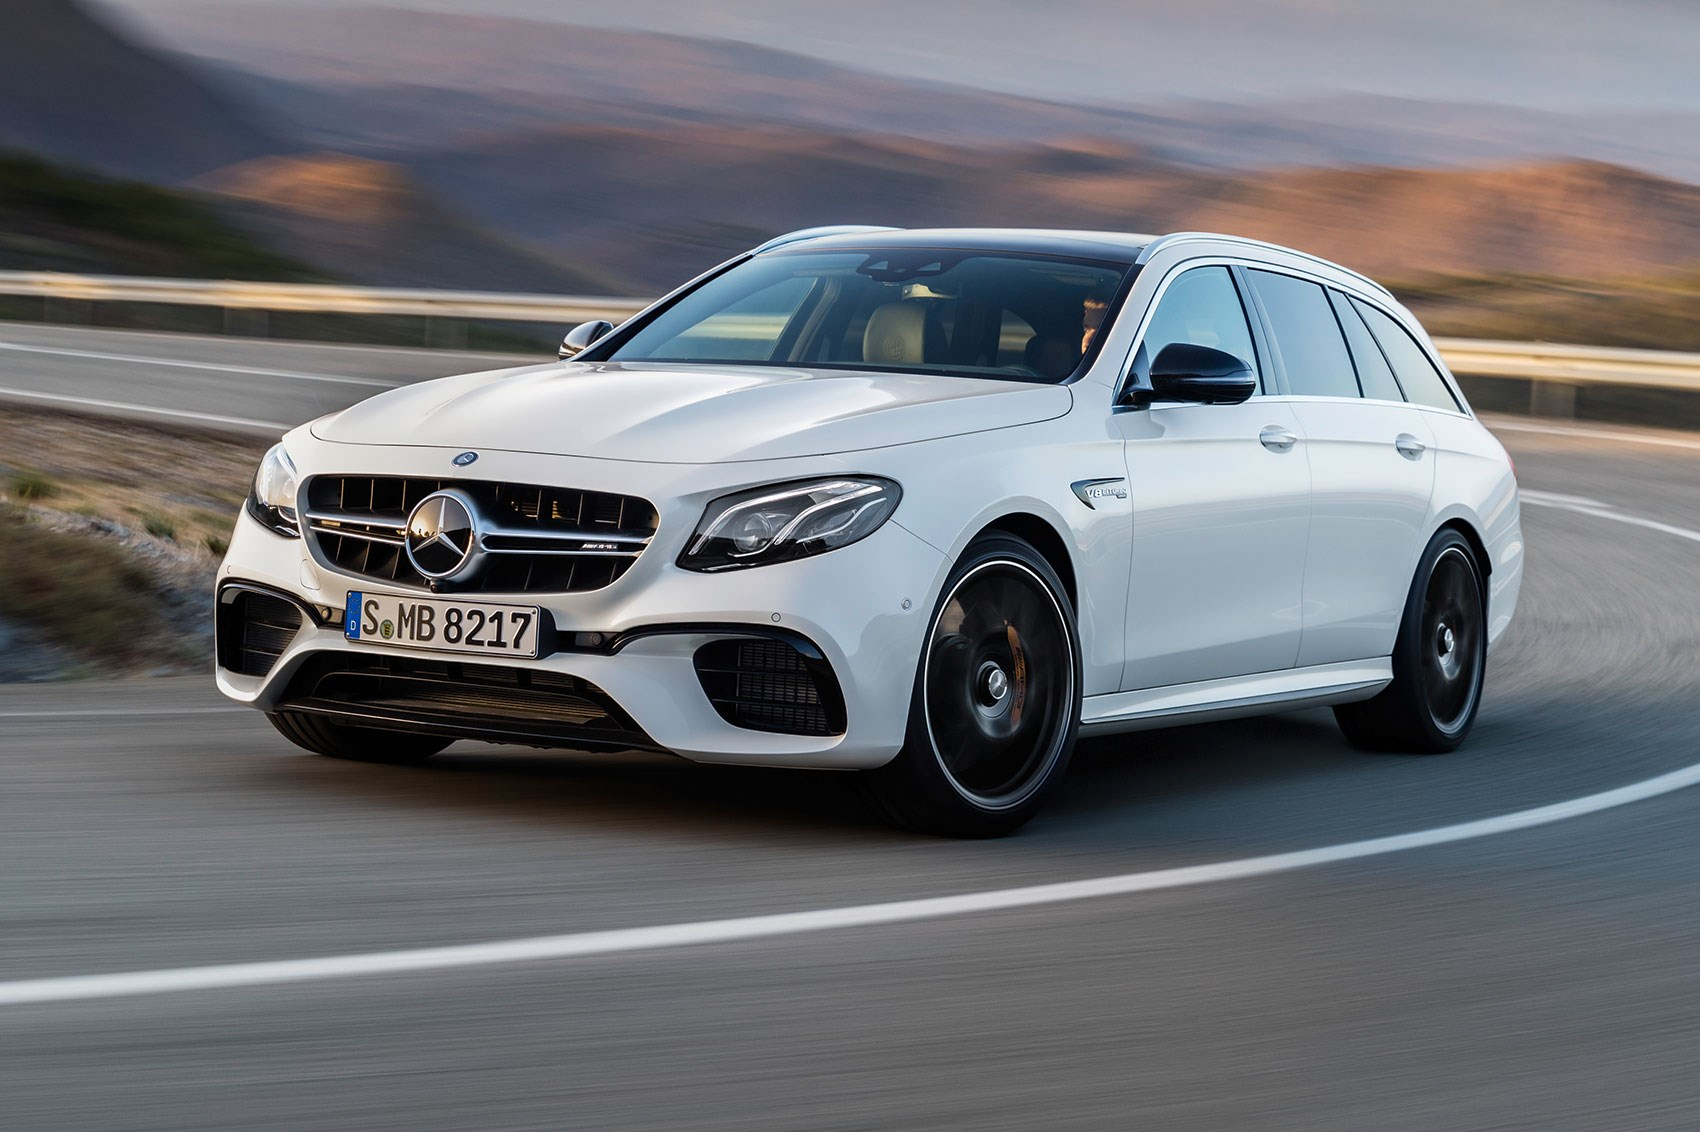 Mercedes amg e63 4matic estate prices revealed for 2017 for 2017 mercedes benz e350 price